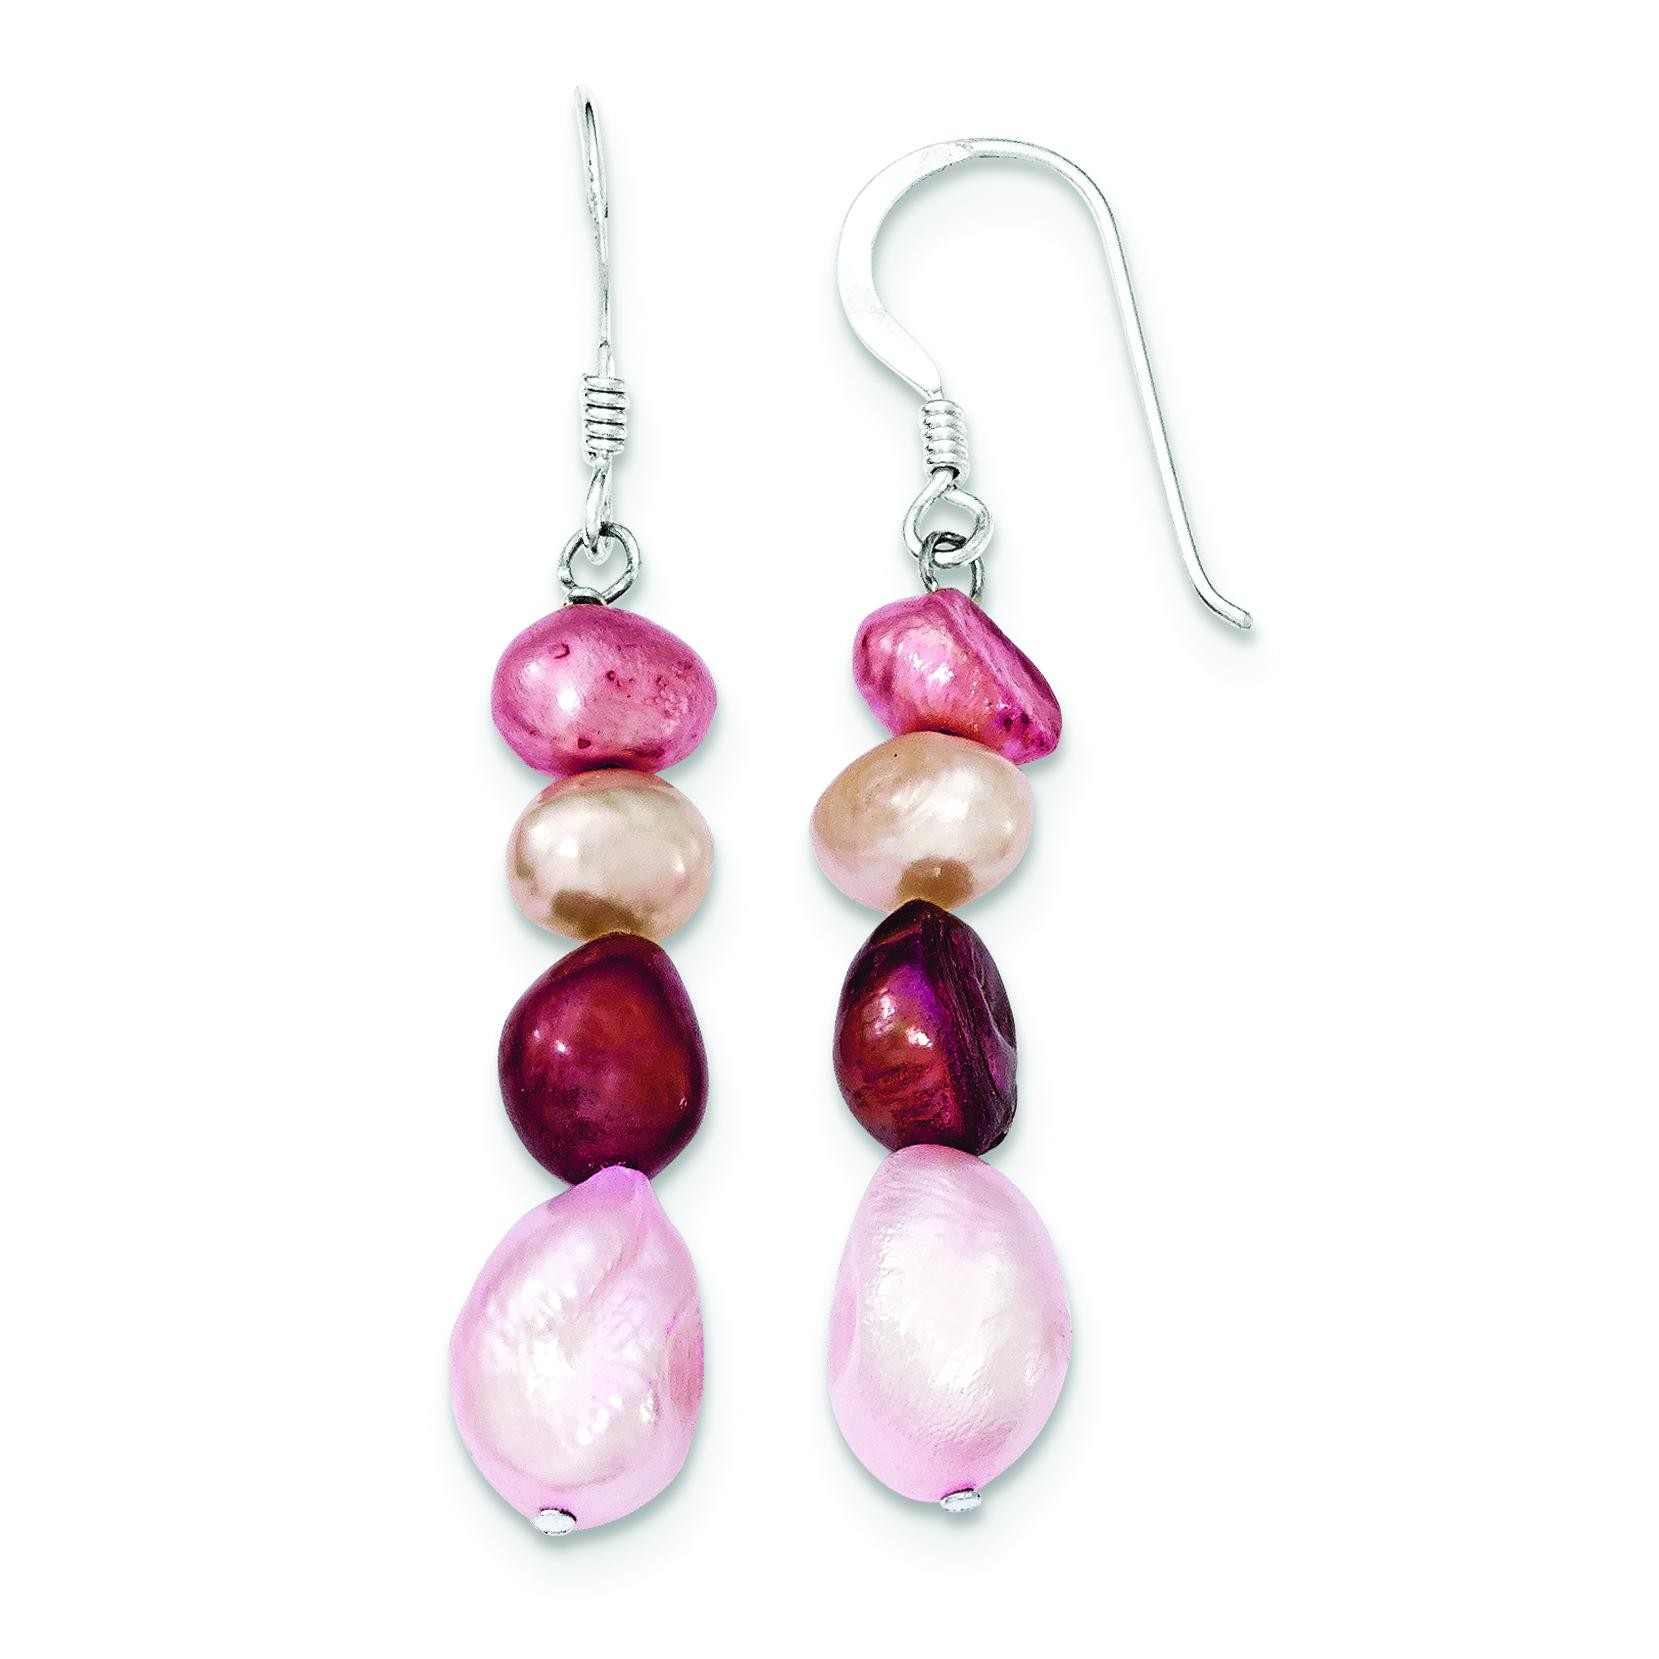 Freshwater Cultured Pearl Multicolor Earrings in Sterling Silver